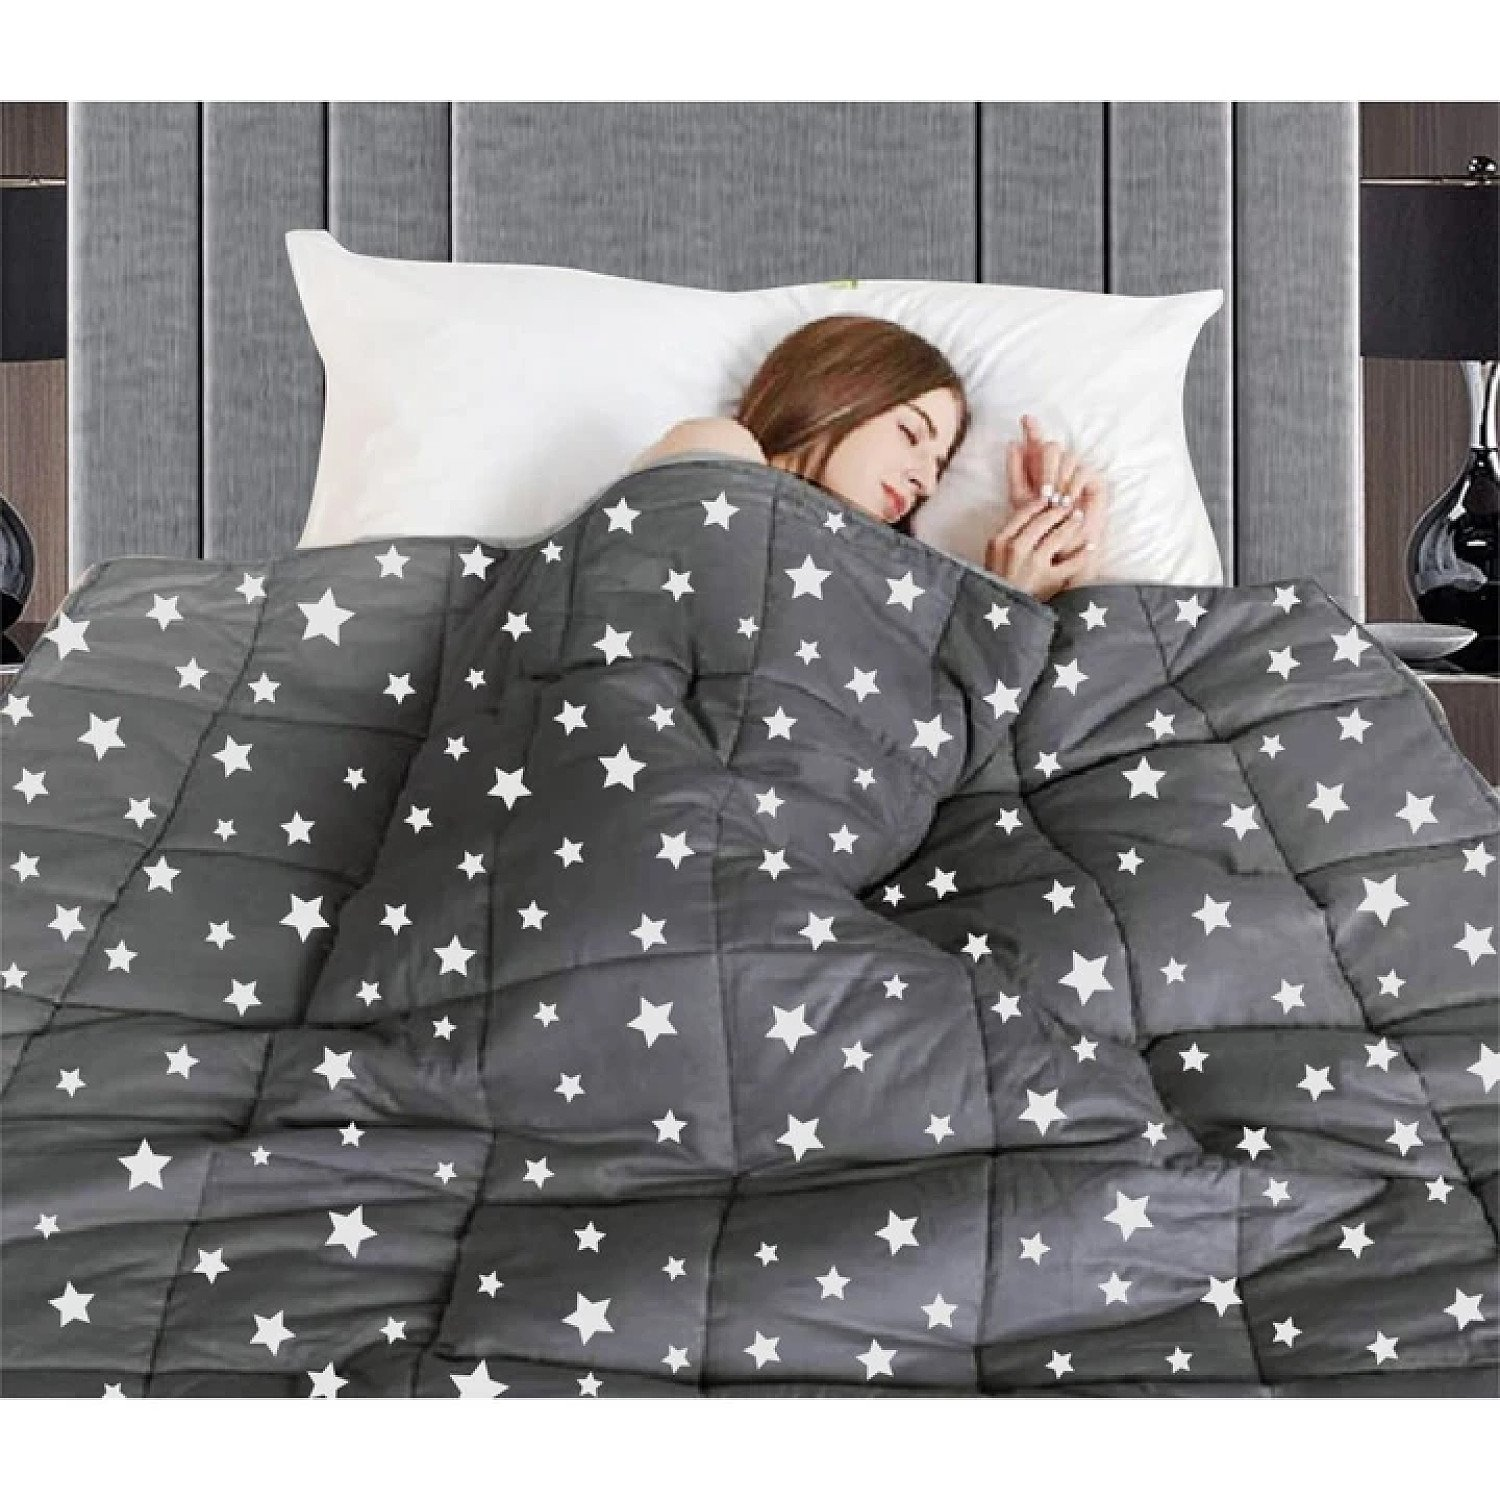 (90 x 120 cms) Stress & Anxiety Releasing Weighted Blanket Free Postage